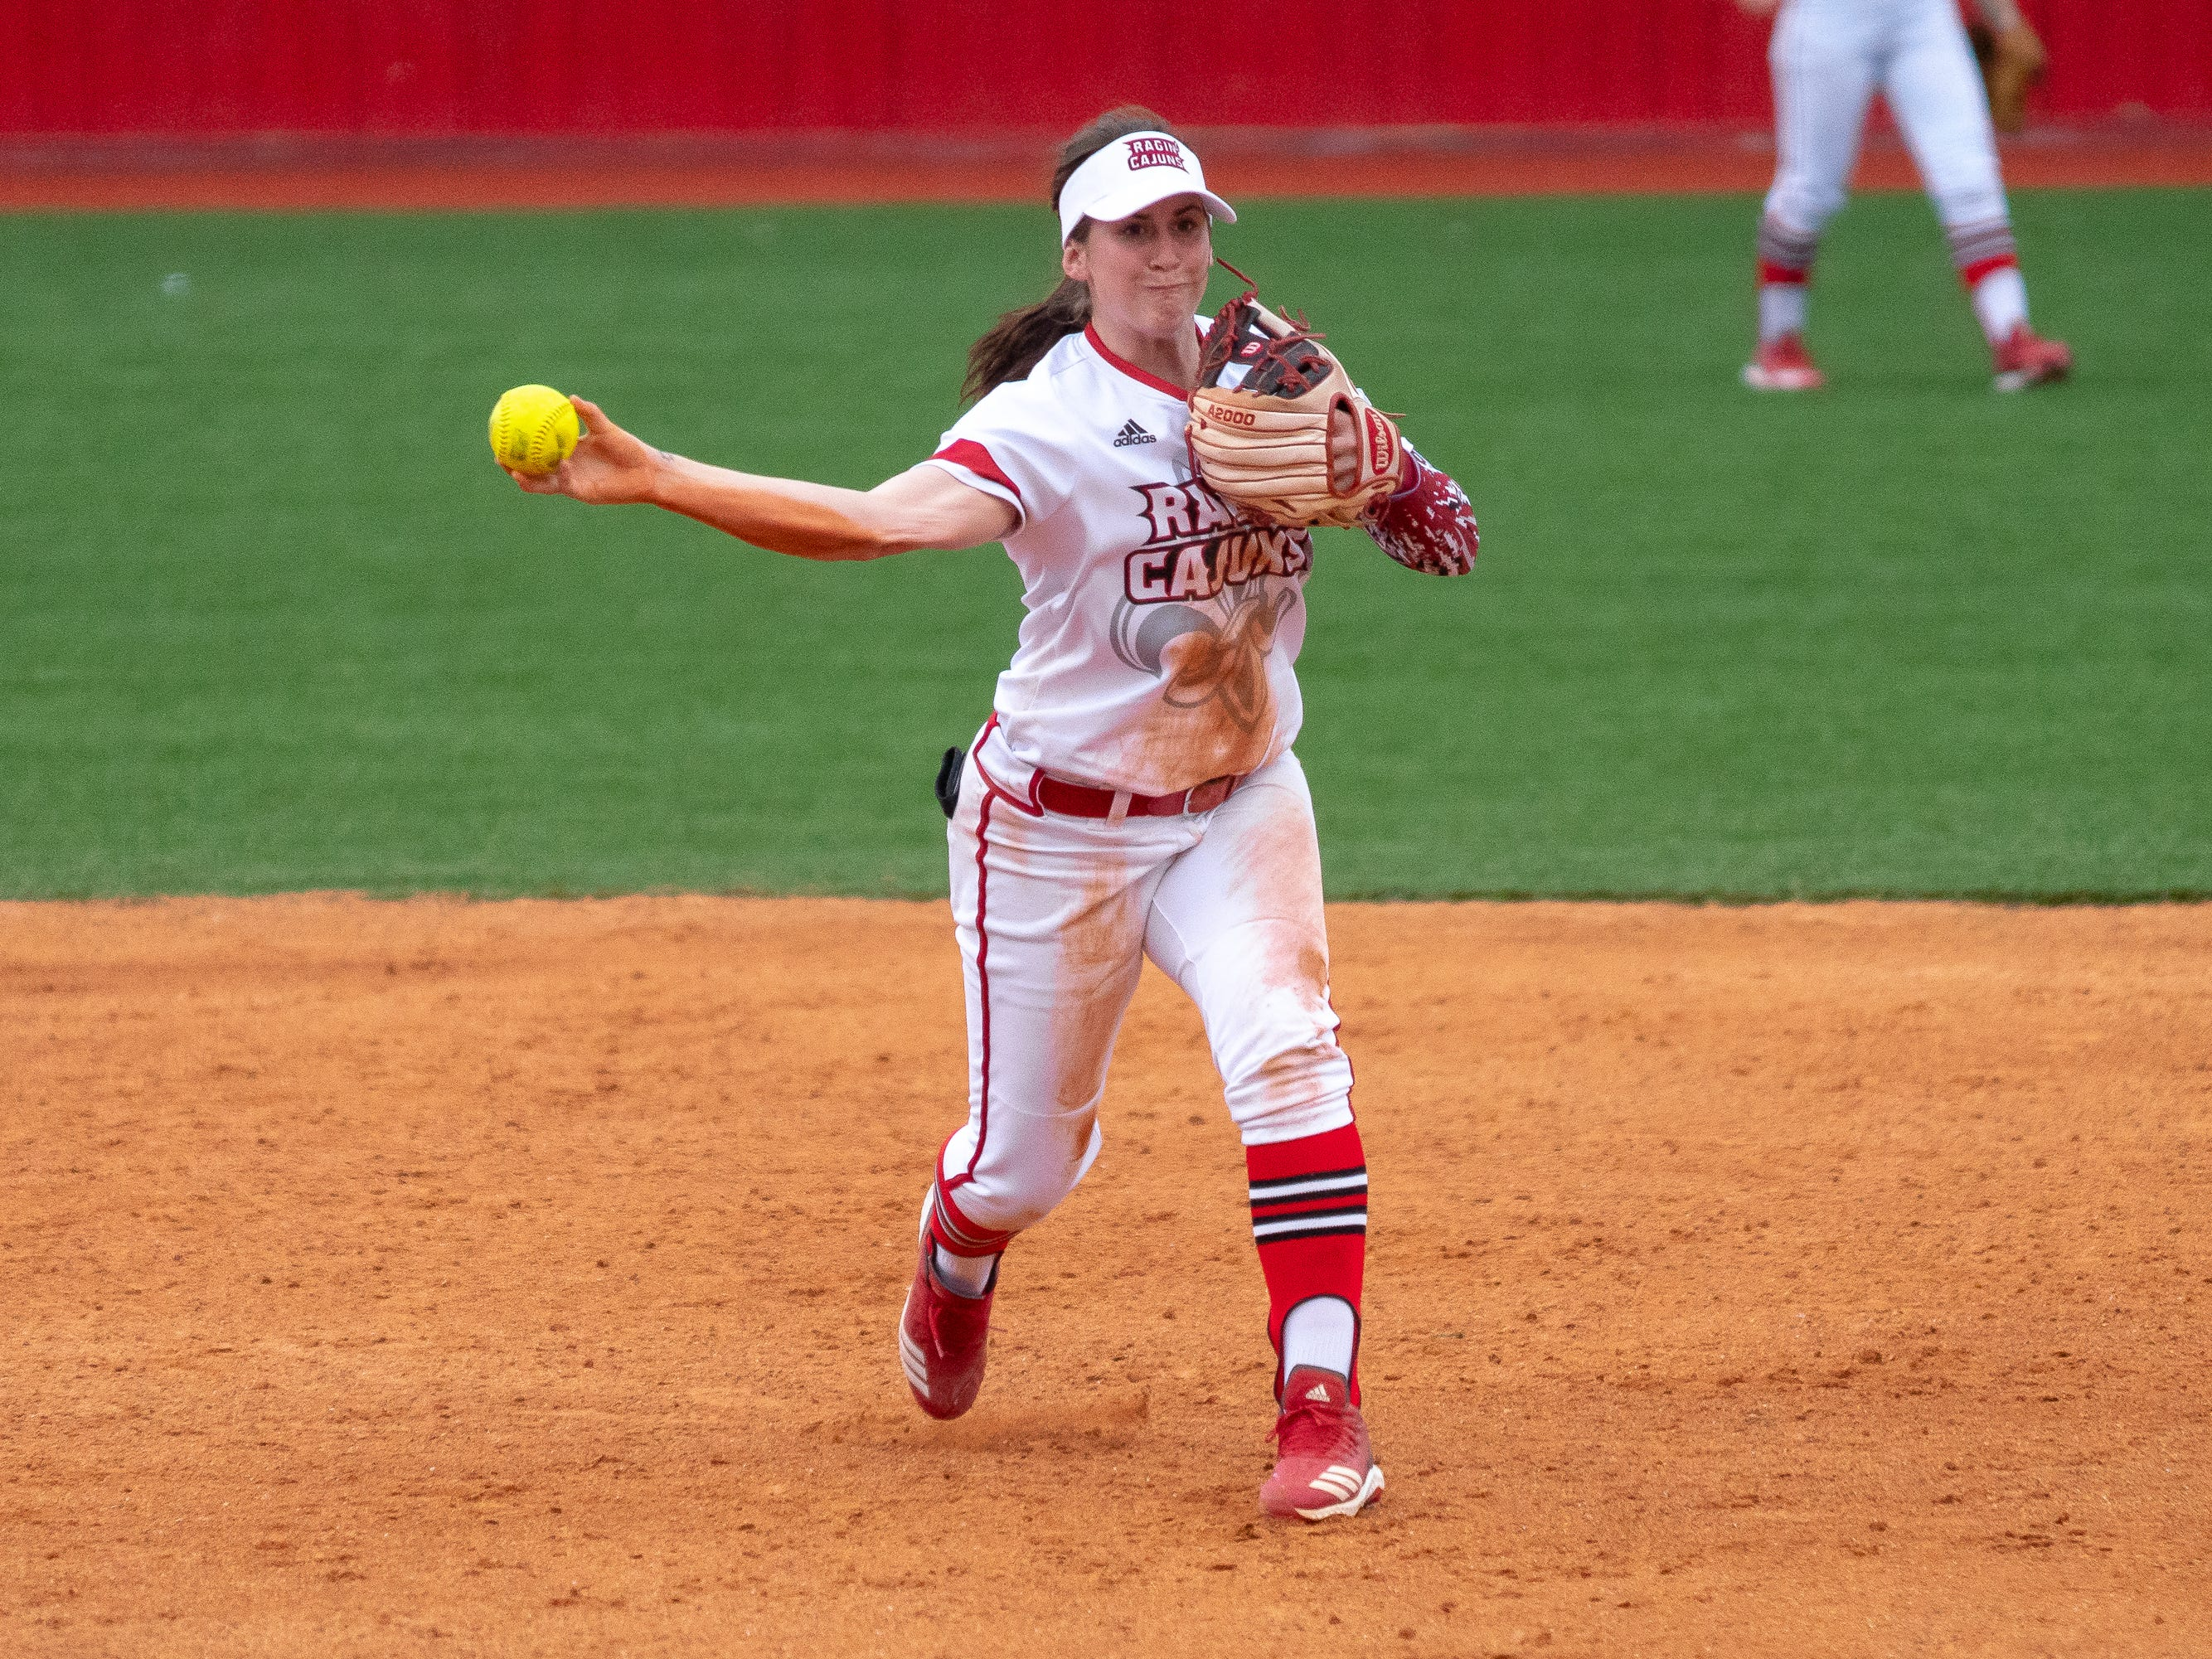 UL's Alissa Dalton throws the ball to first base as the Ragin' Cajuns play against the California Golden Bears at Lamson Park on February 11, 2019.